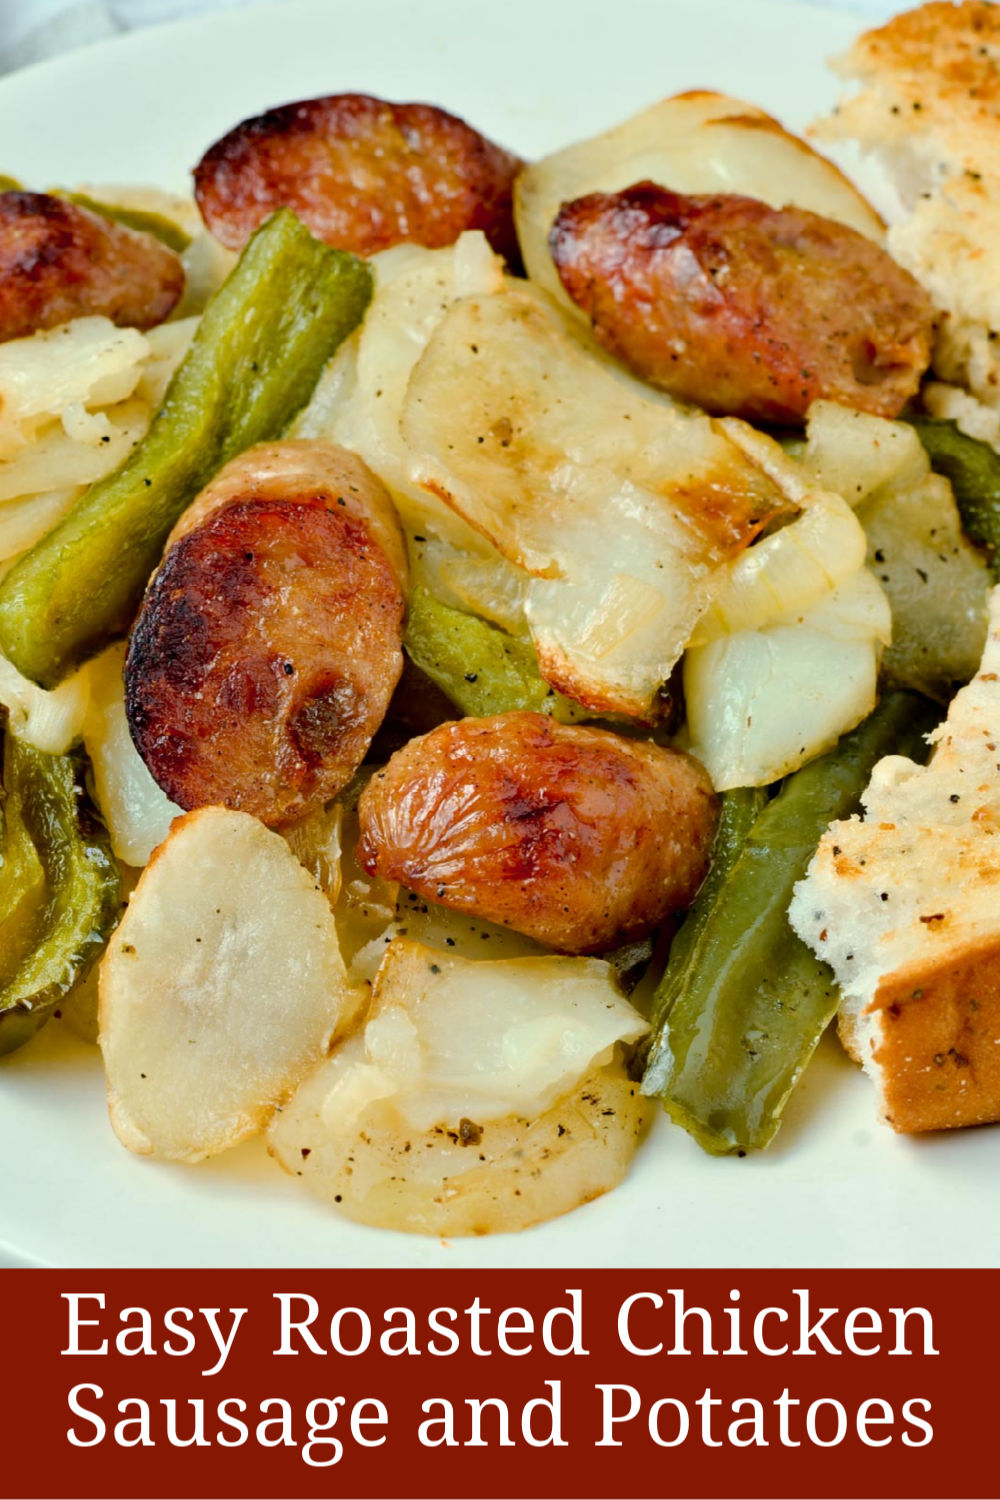 Easy roasted chicken sausage with potatoes and green pepper and a gluten-free bagel.